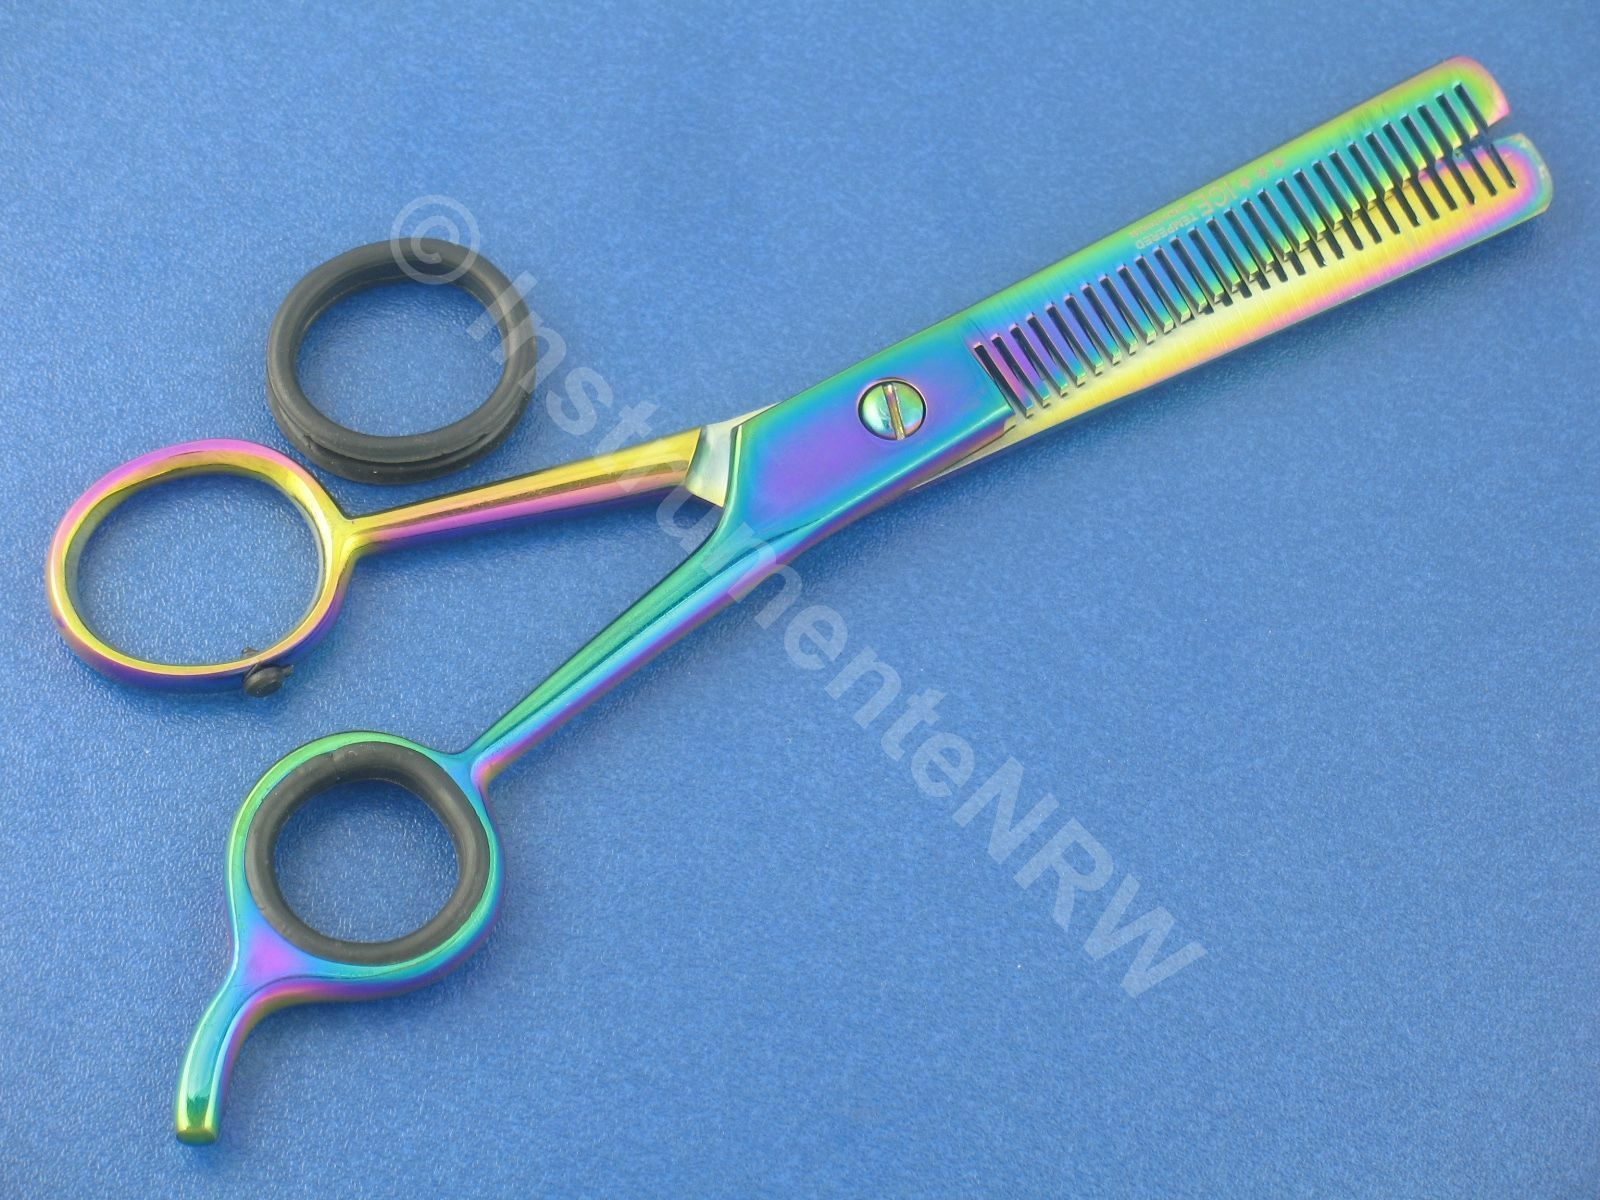 Professional Hairdressing Barber and Thinning scissors set